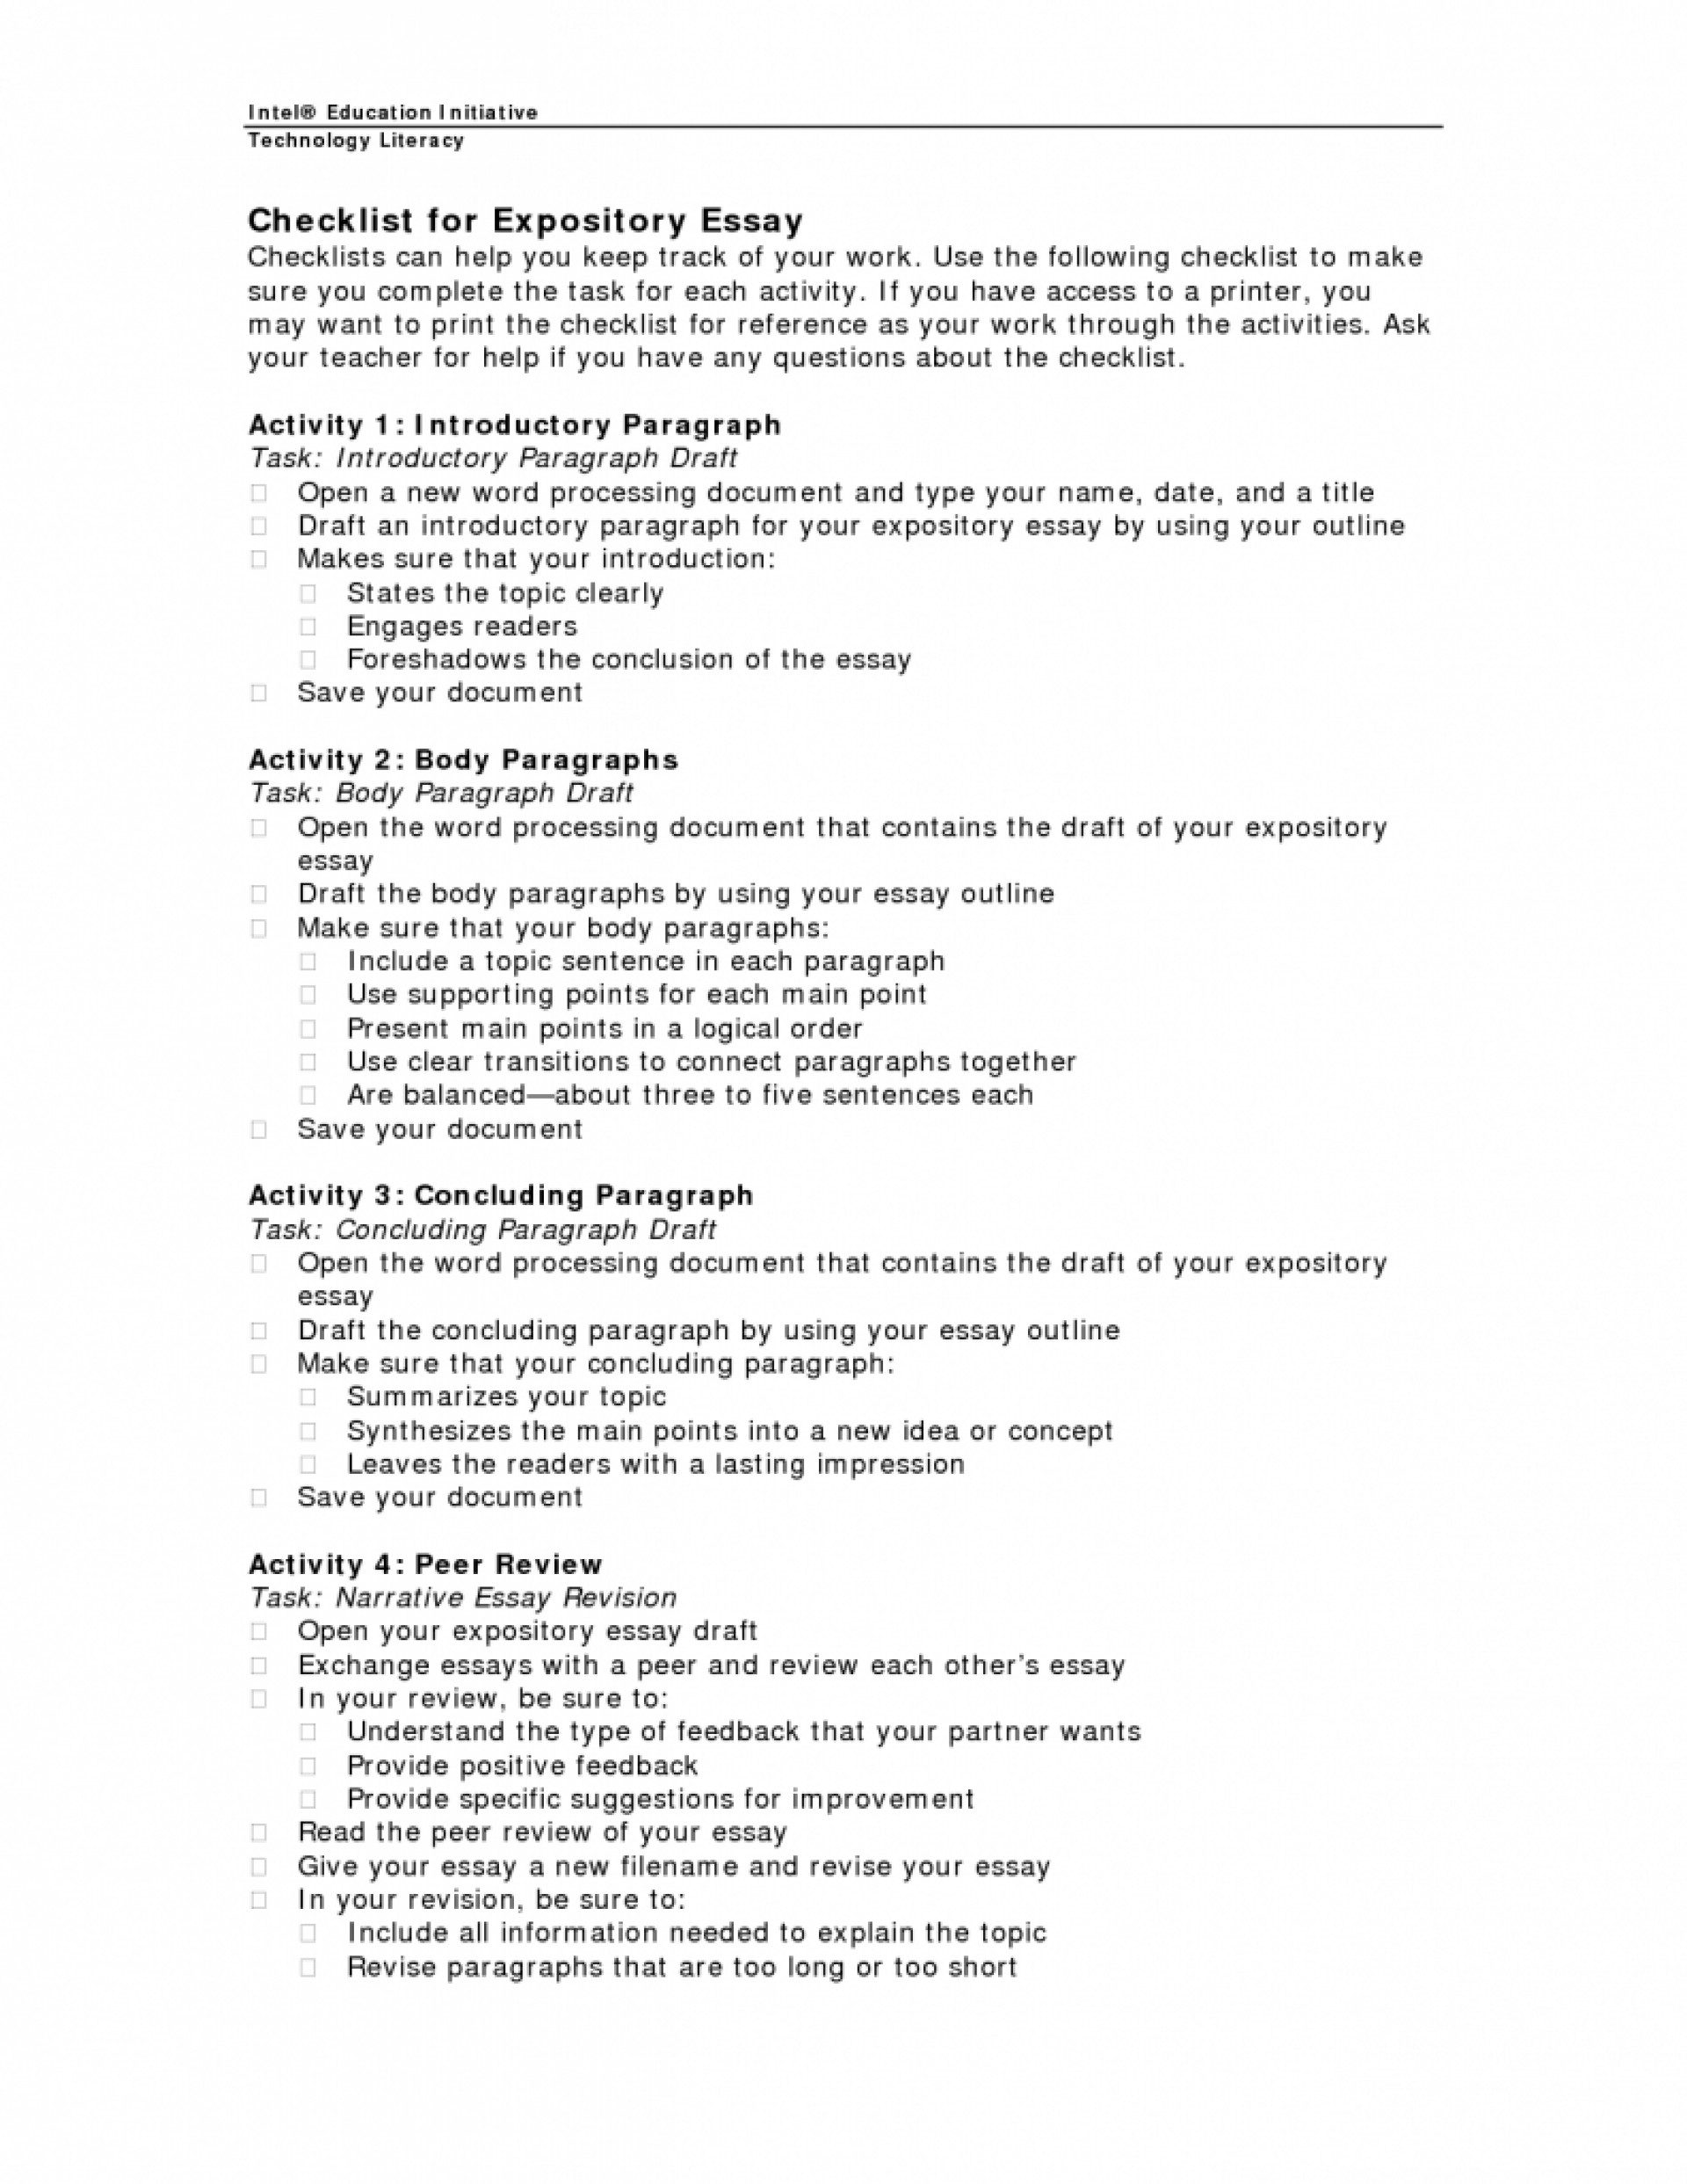 008 Expository Essay Checklist 791x1024 Informational Format Top Interview Explanatory Guidelines Quote 1920